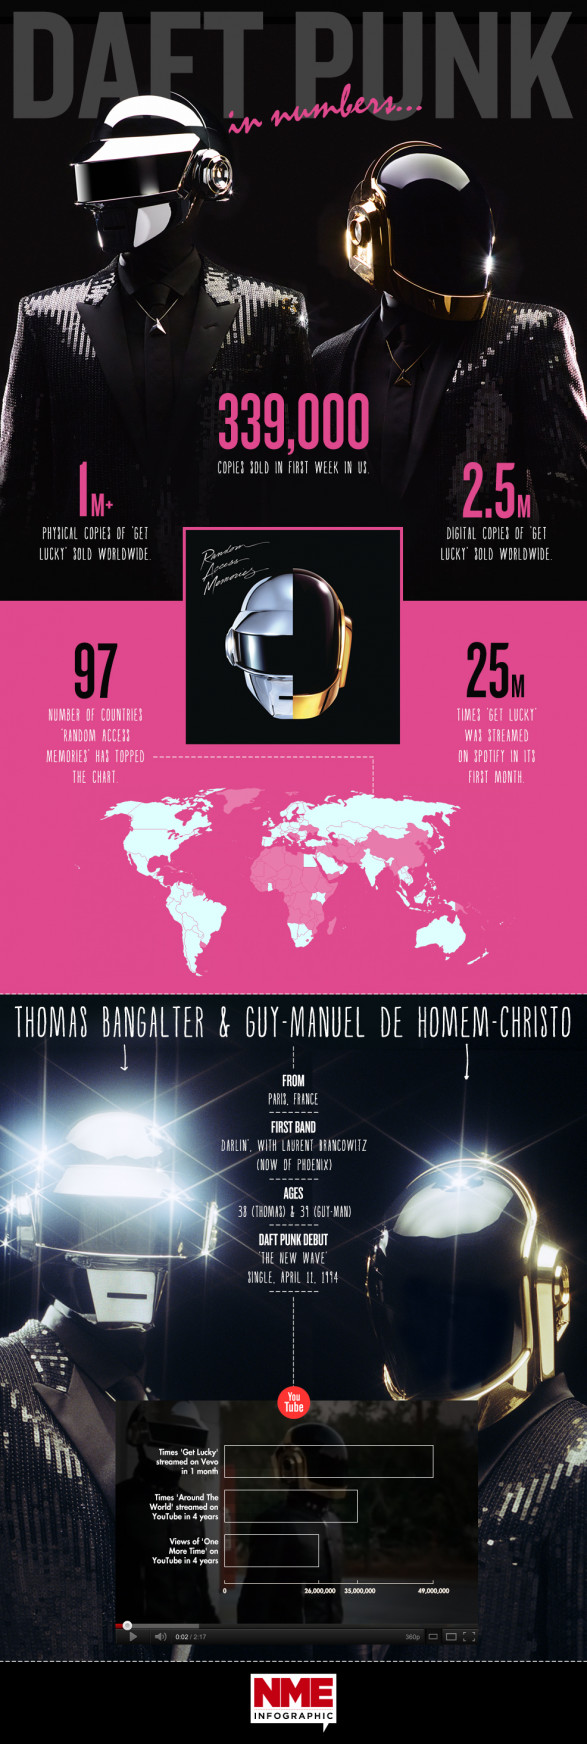 Daft Punk In Numbers